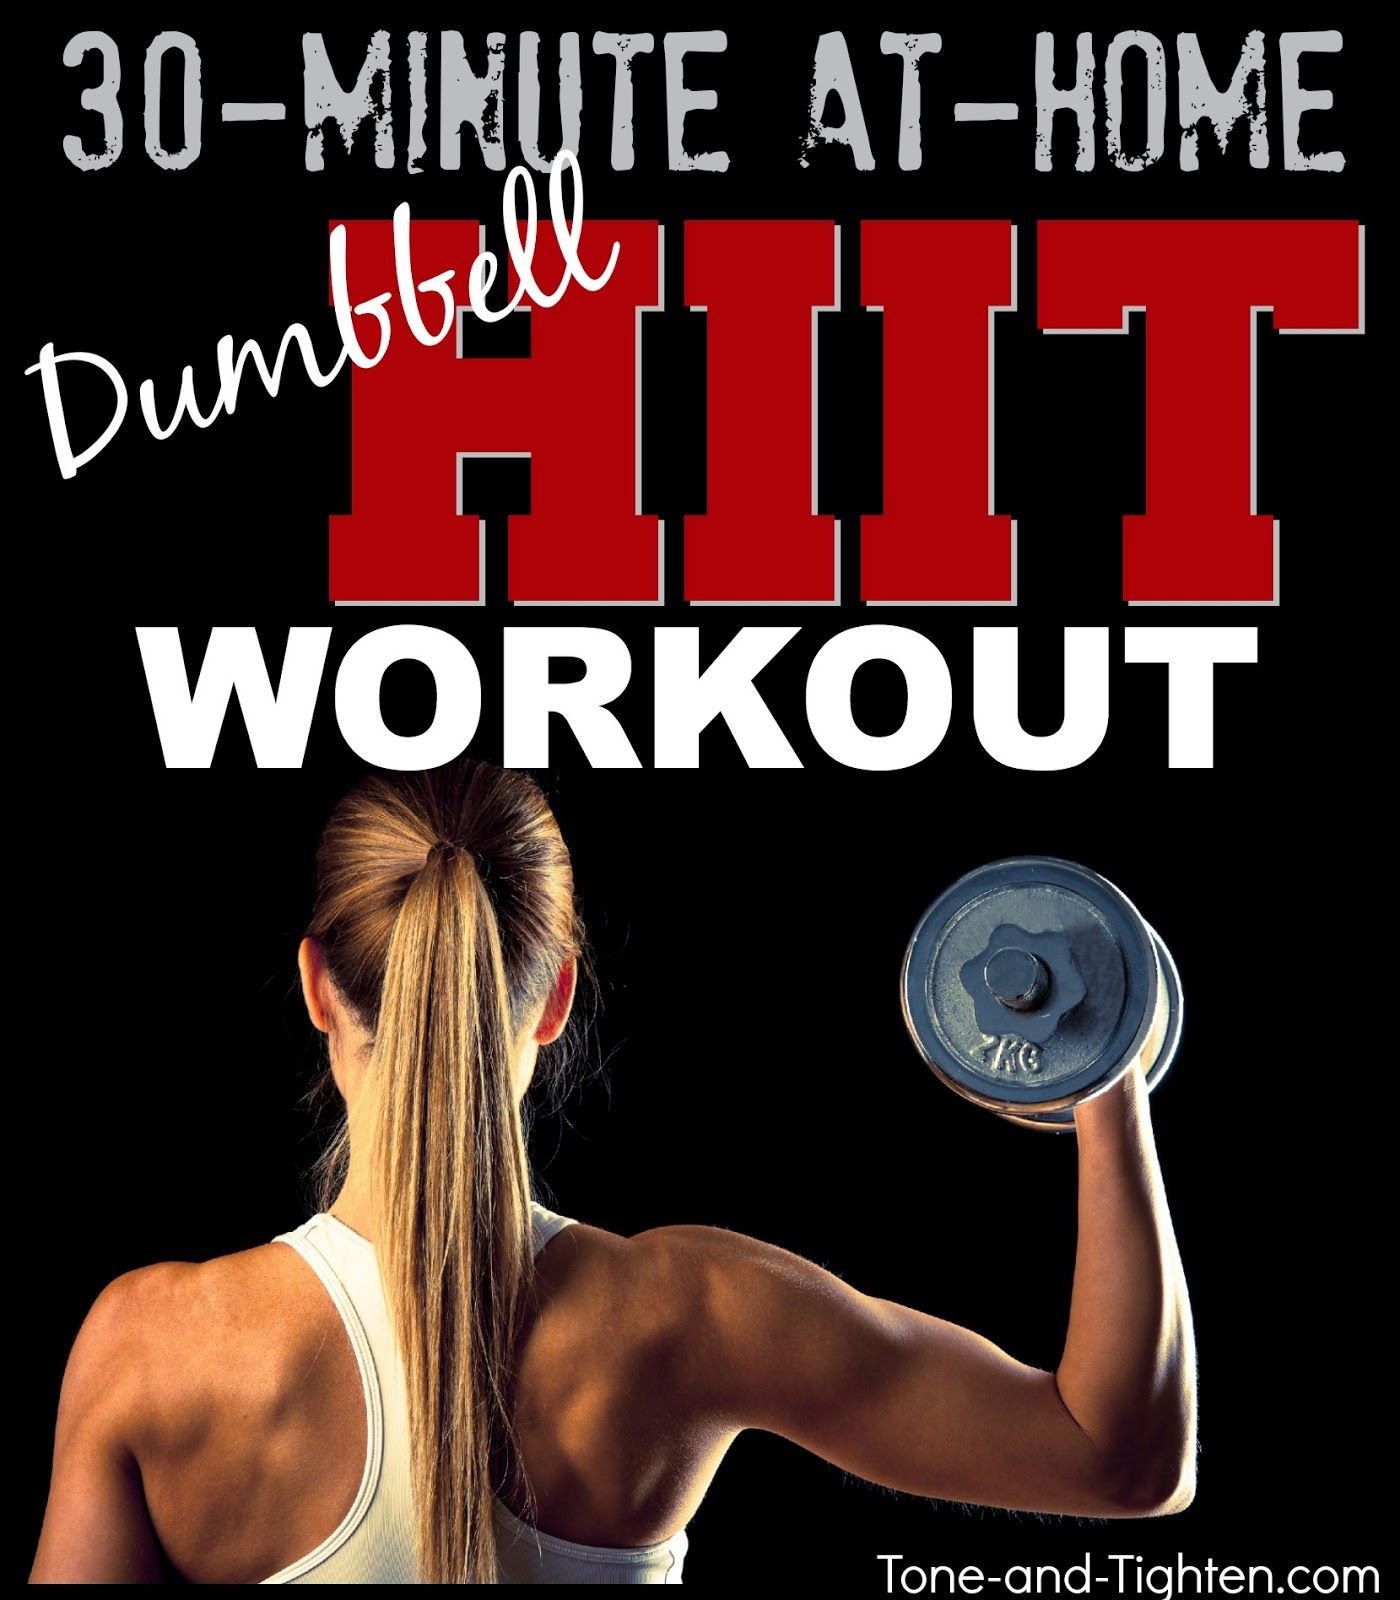 30 Minute HIIT Workout With Dumbbells